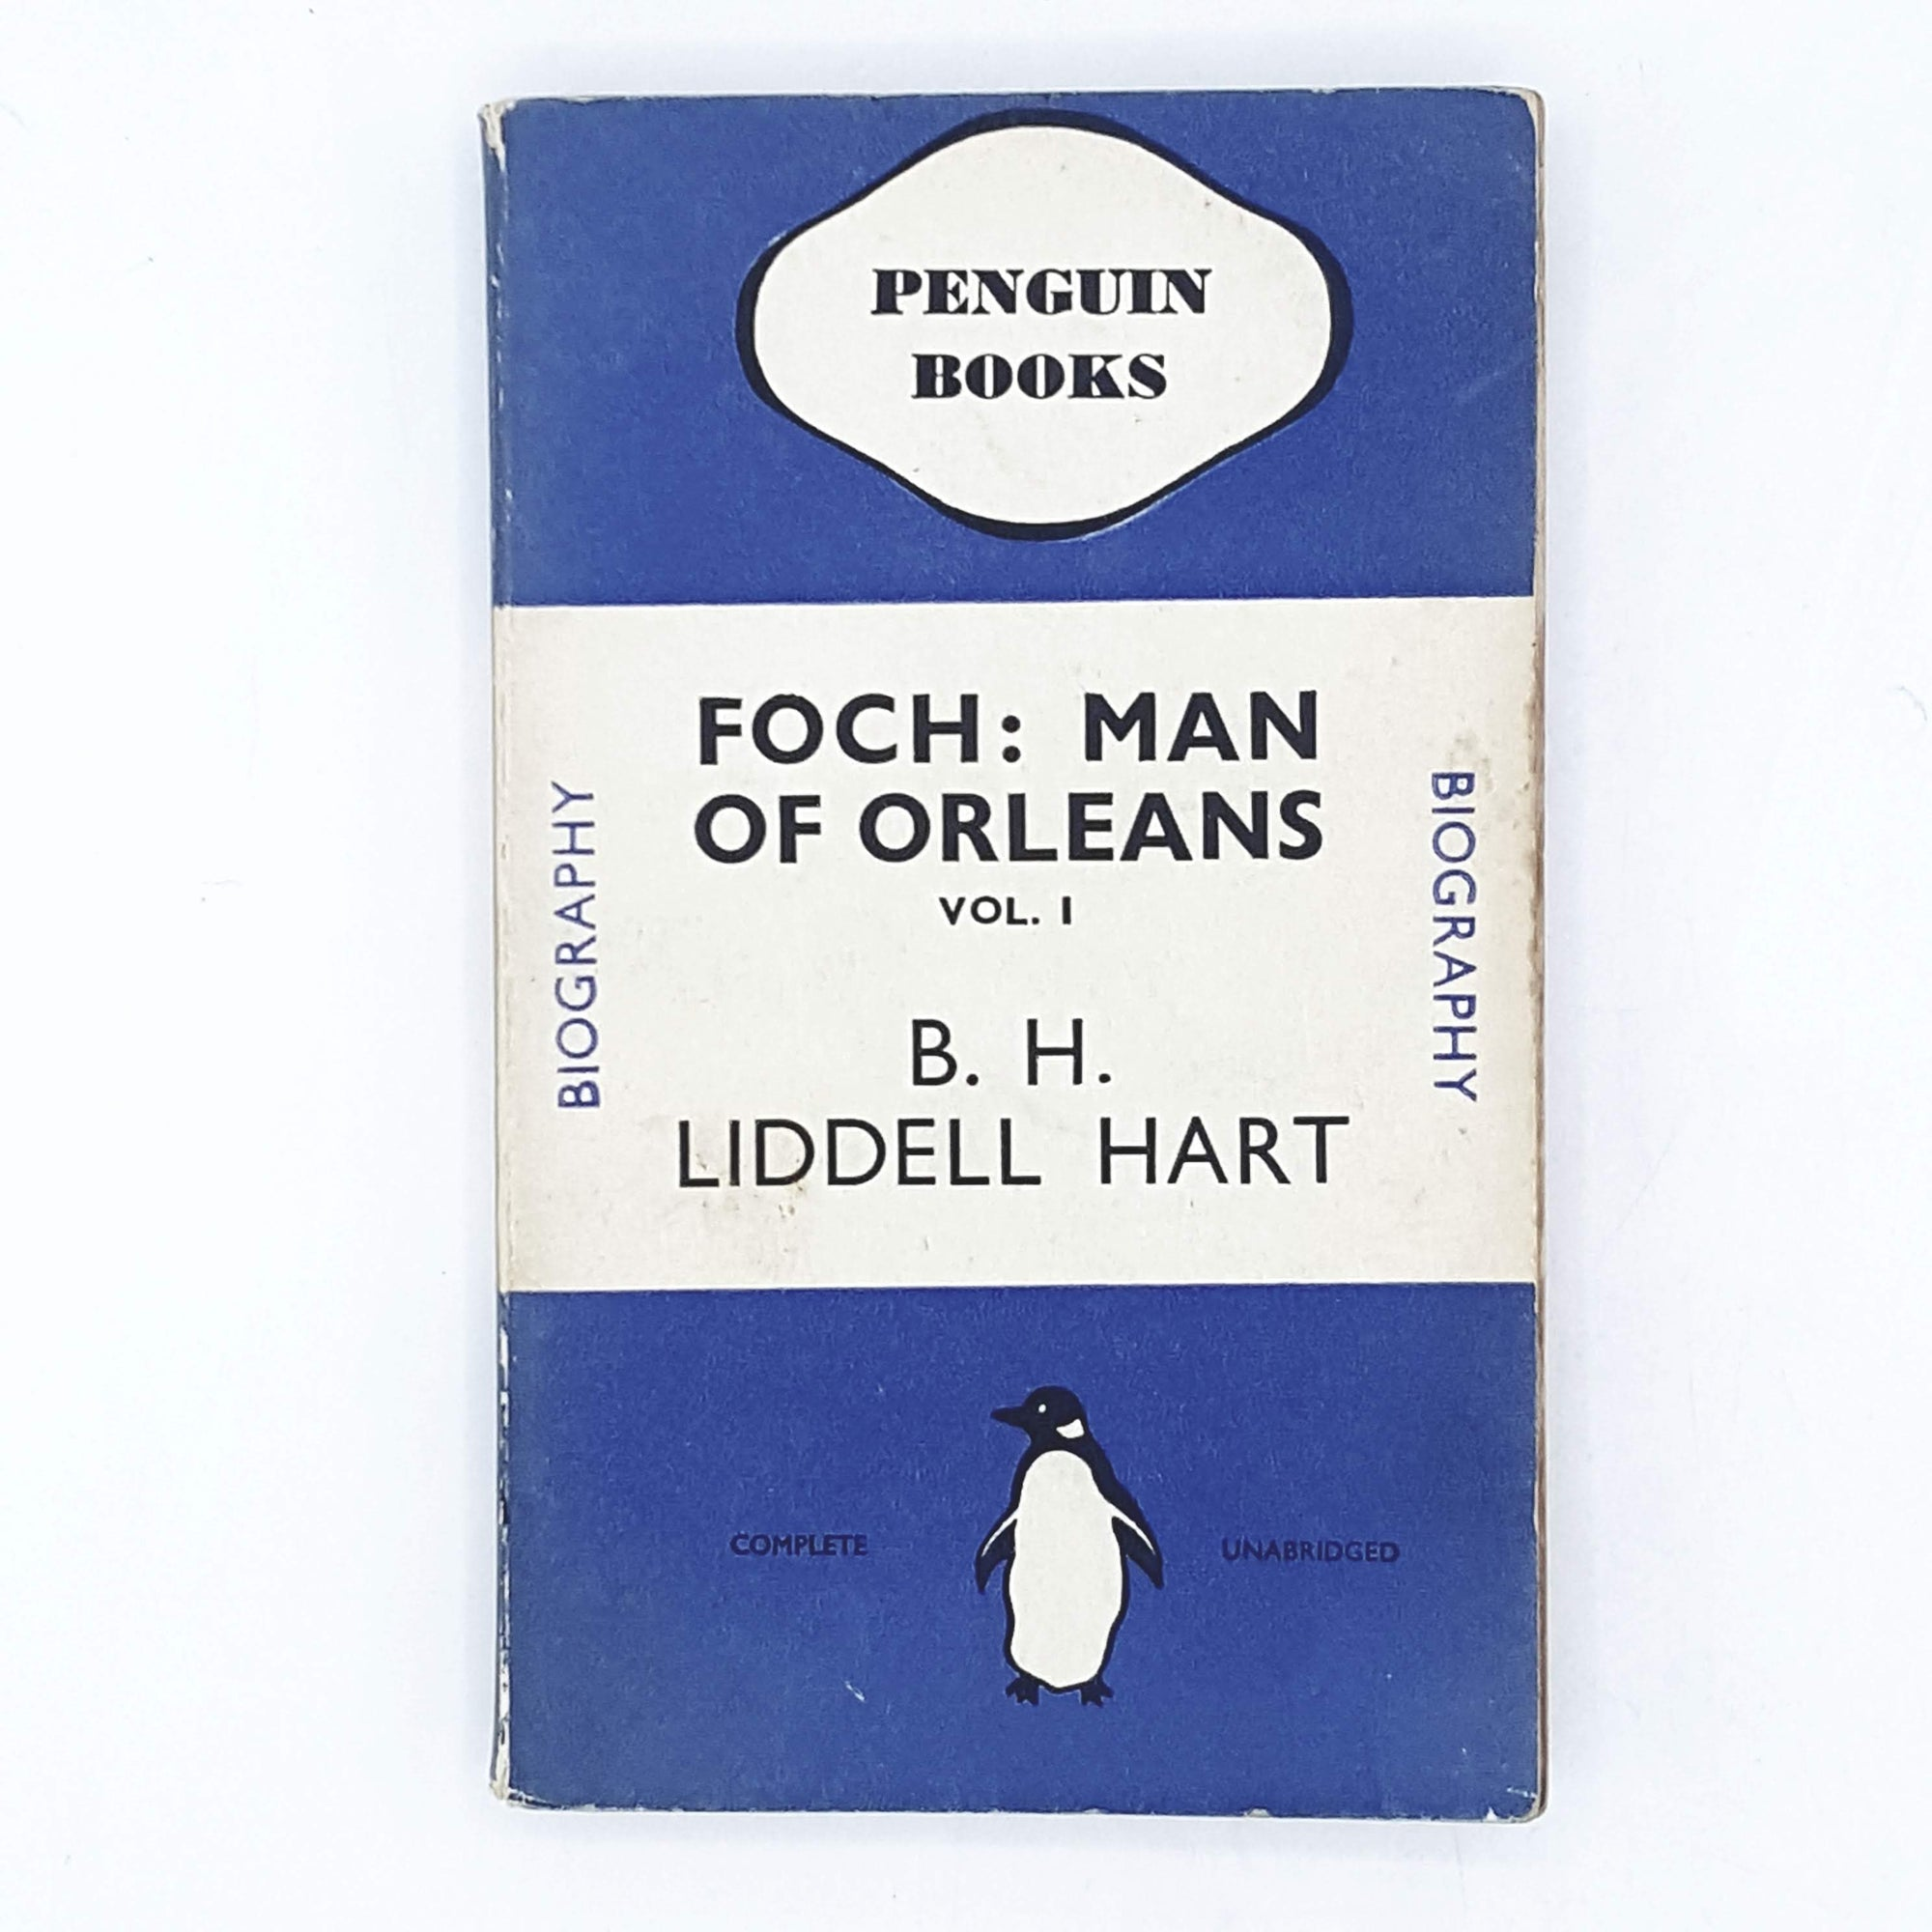 Foch: Man of Orleans by B. H. Liddell Hart 1937